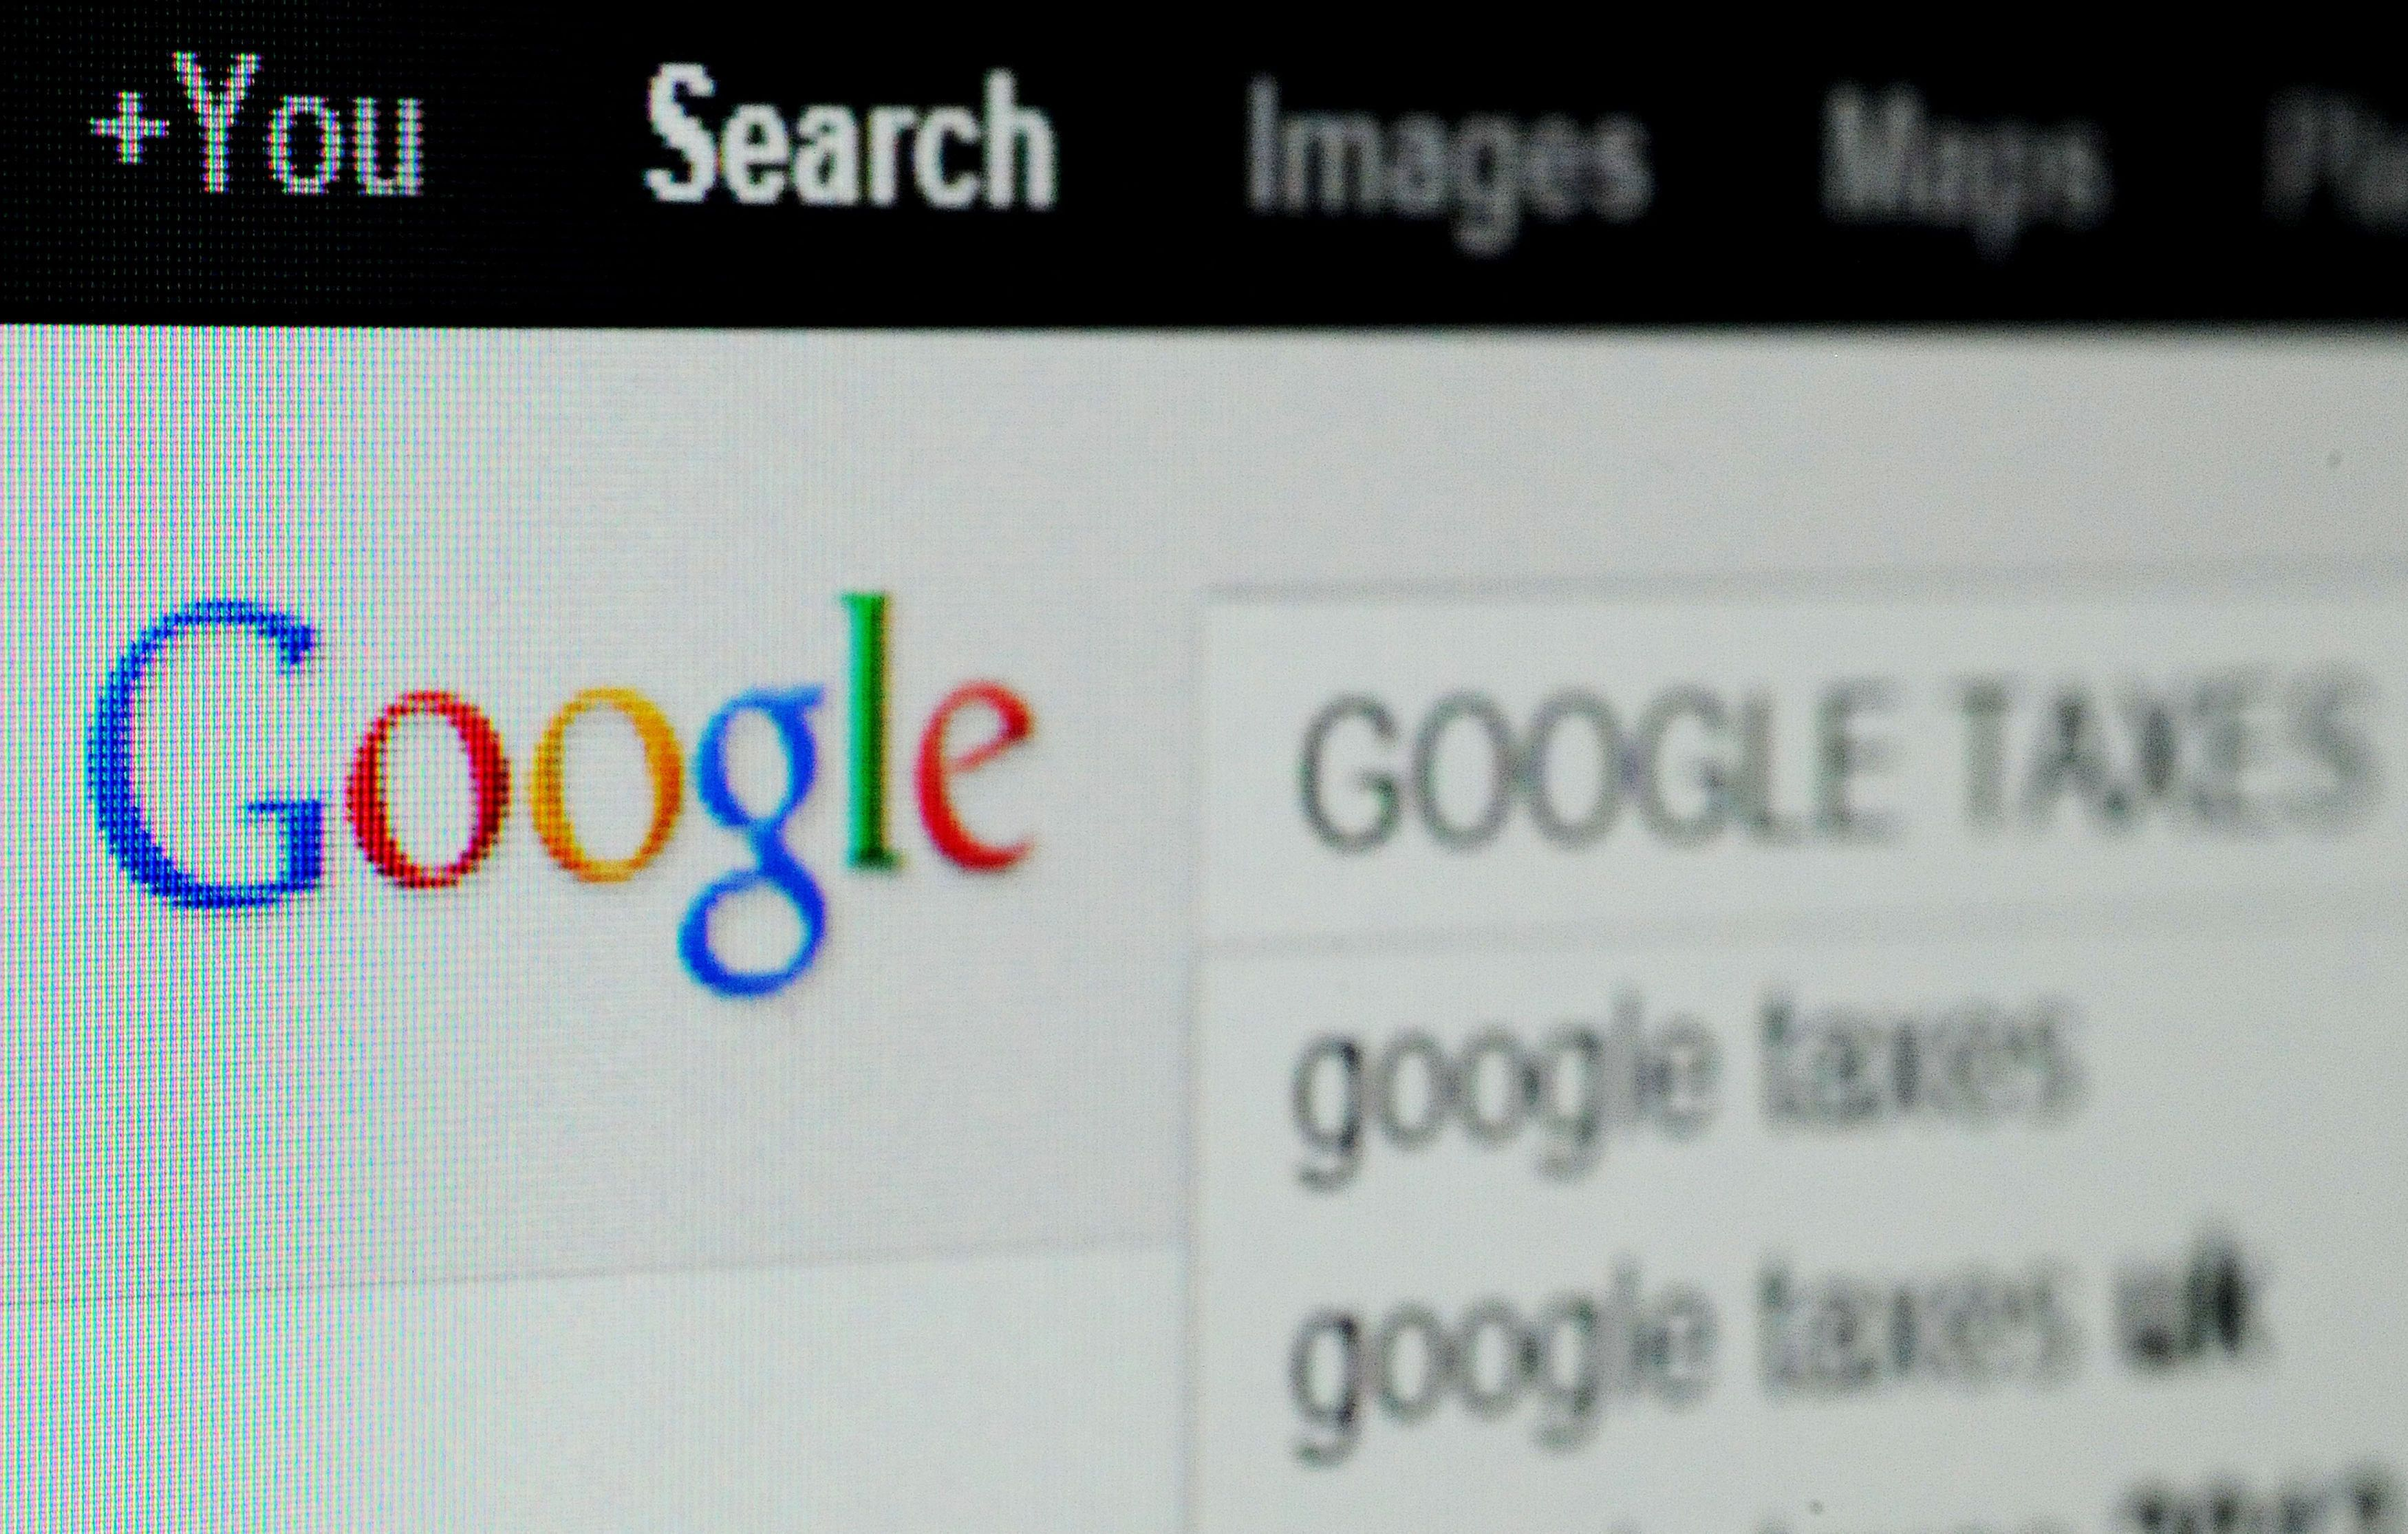 Google paid £36.4 million in UK corporation tax for the year to June 30, 2016, the company has